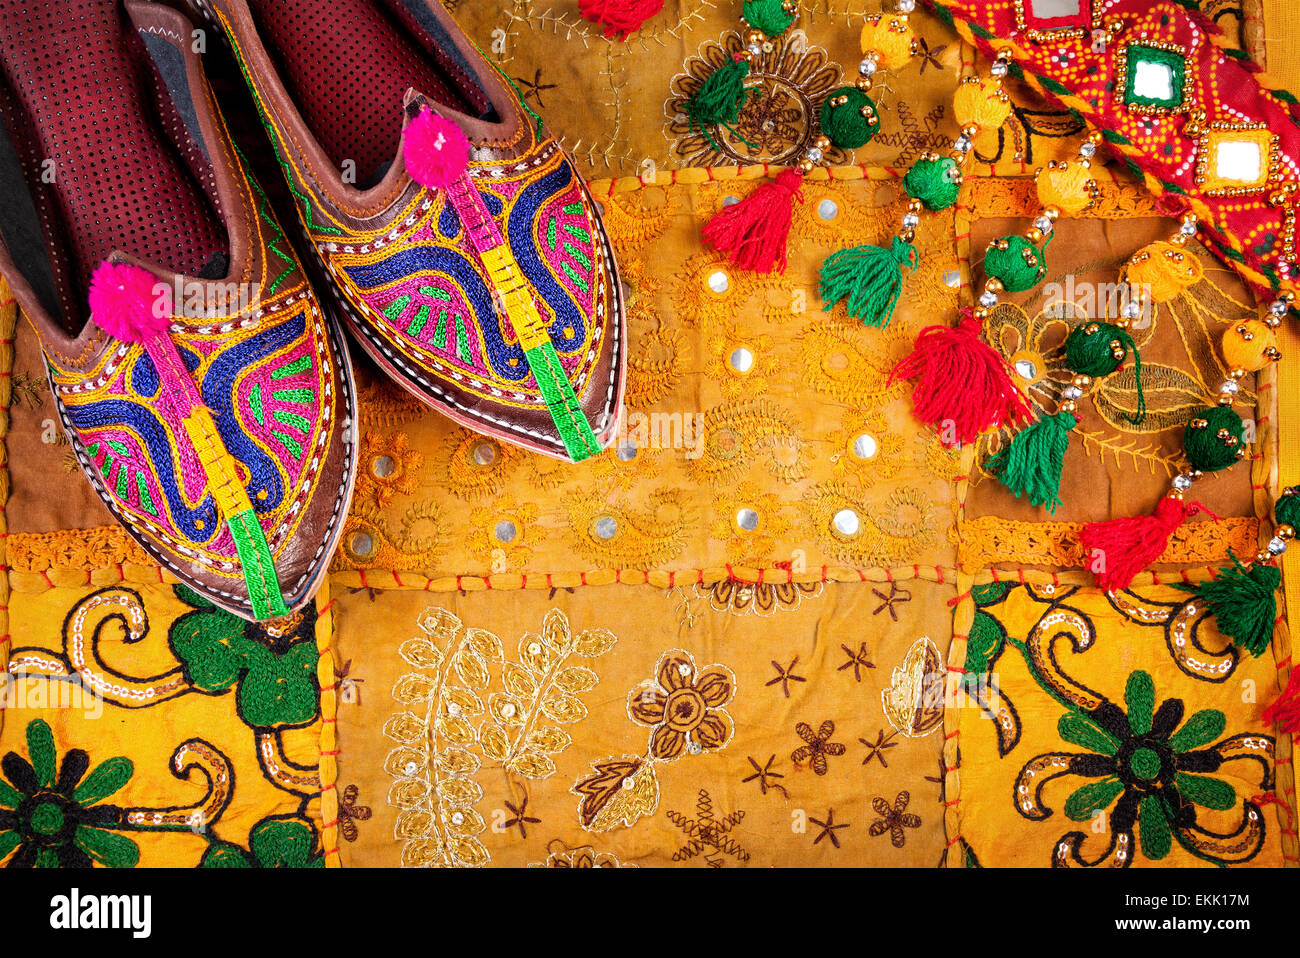 Colorful ethnic shoes and gipsy belt on yellow Rajasthan cushion cover on flea market in India - Stock Image